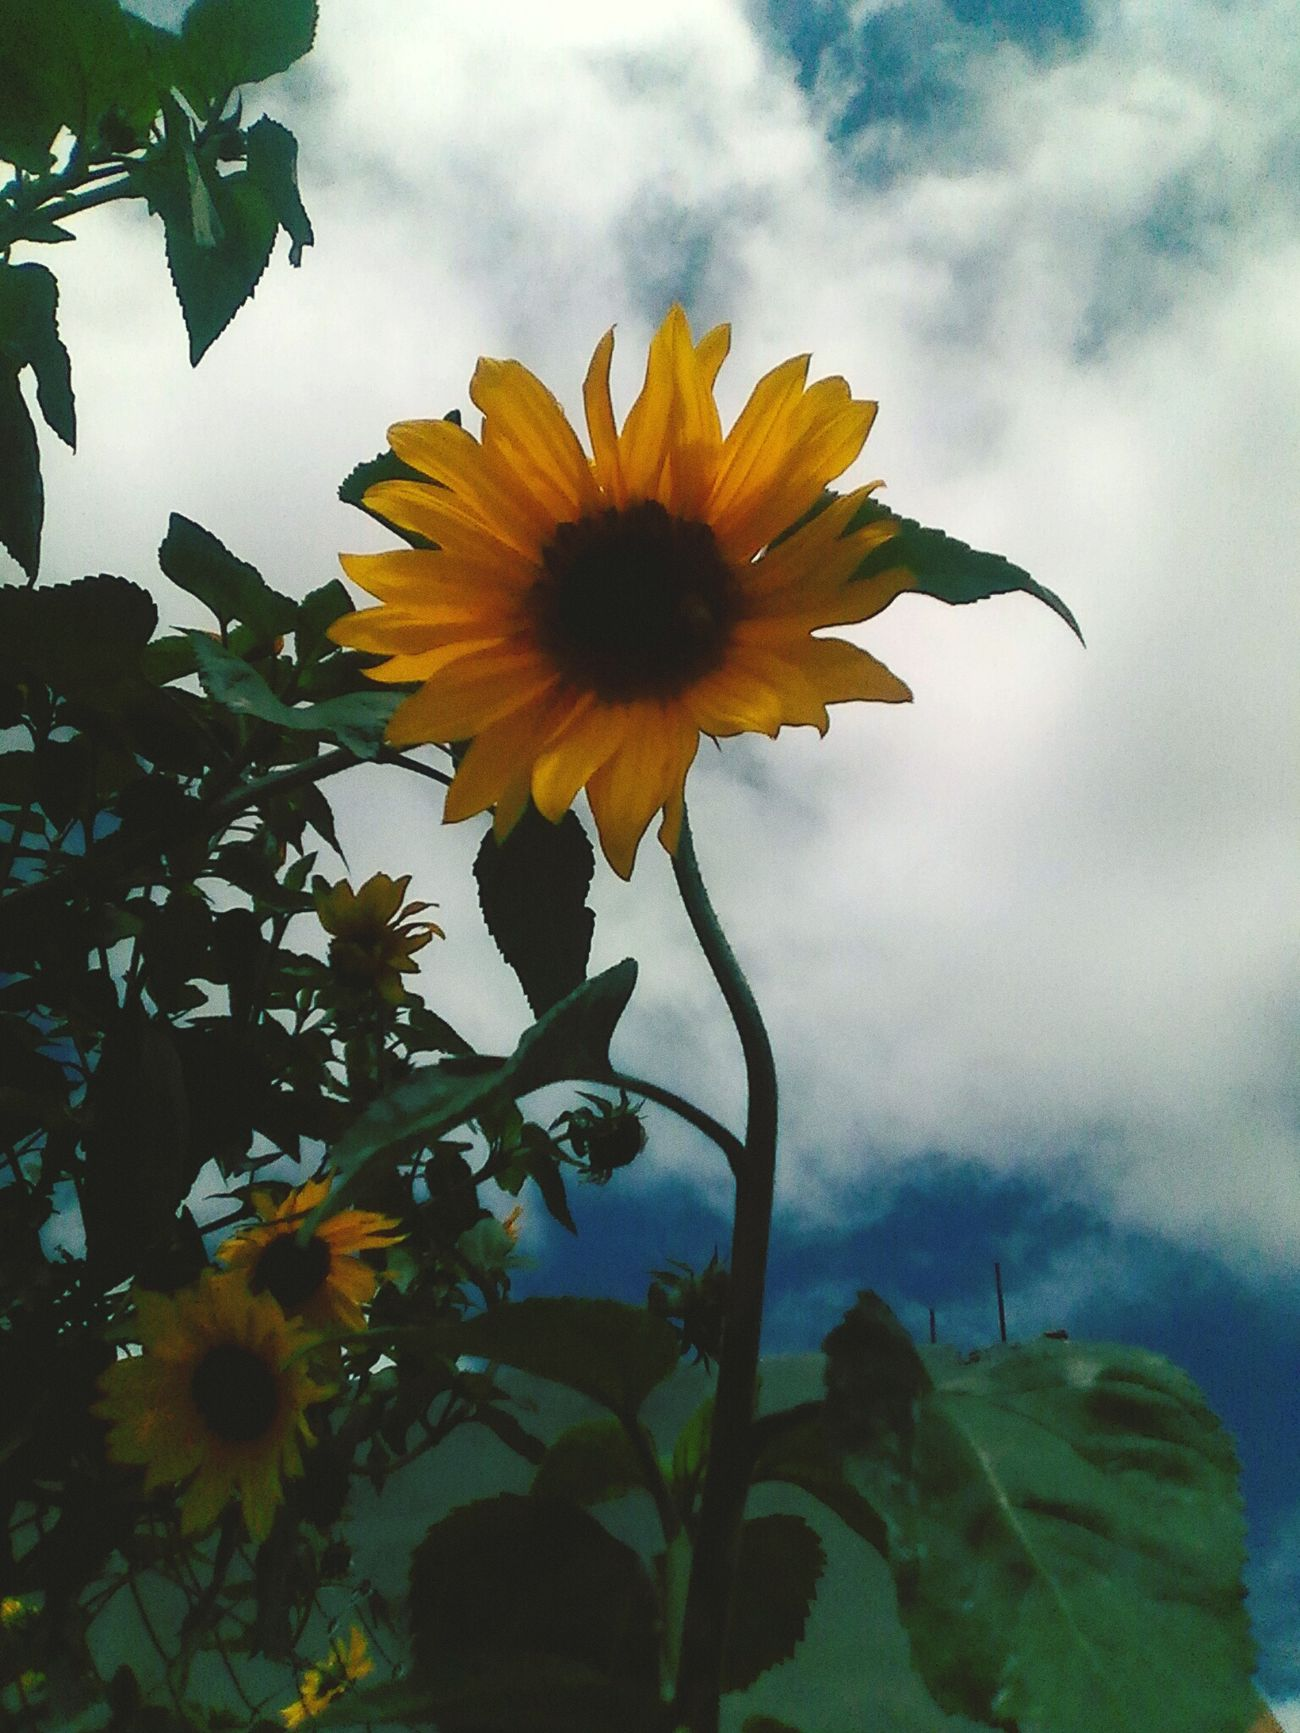 Picoftheday Photography Byme 😆 Cool Like Hello ❤ Imnewtothis Hola :) Hola Flor Girasol